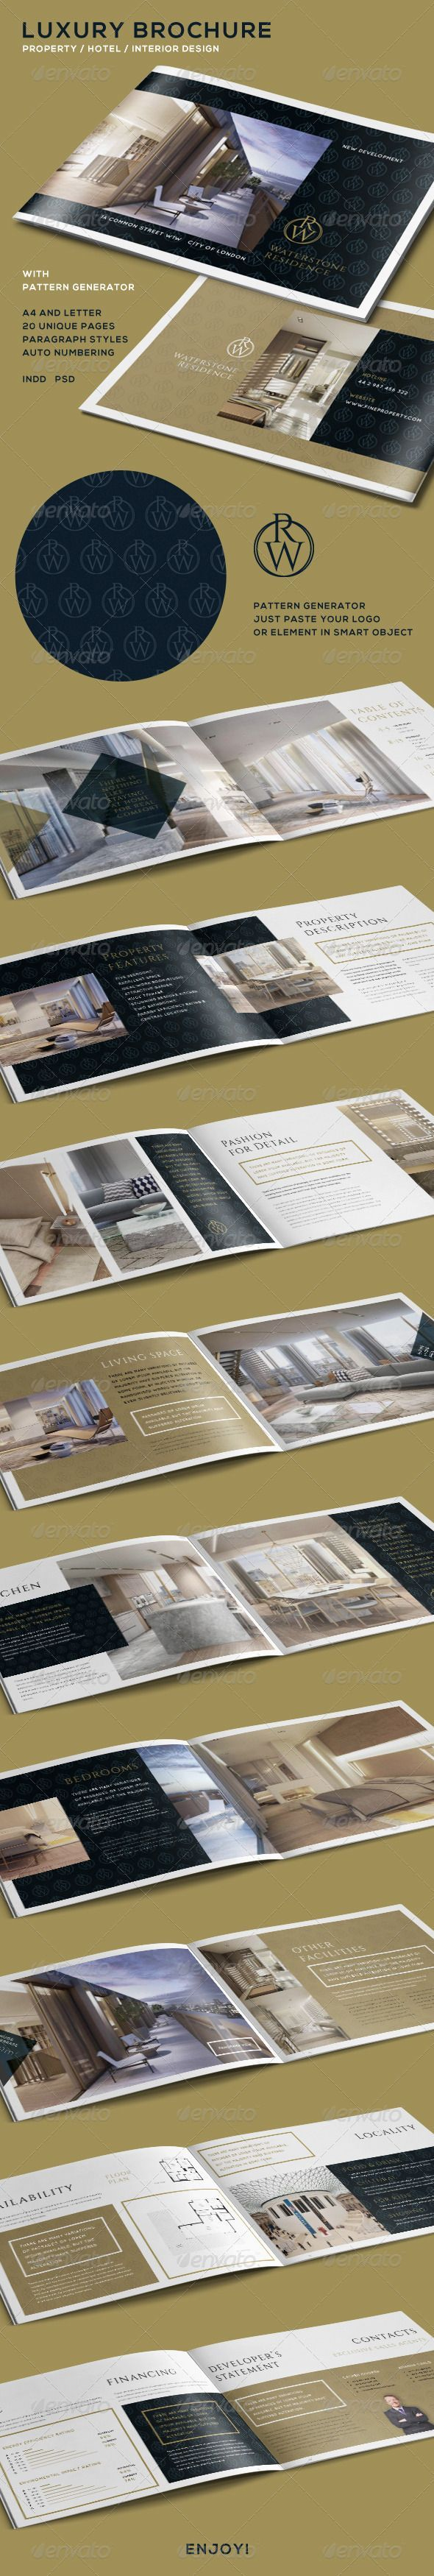 Luxury Brochure for Property - Hotel - Interior  #graphicriver